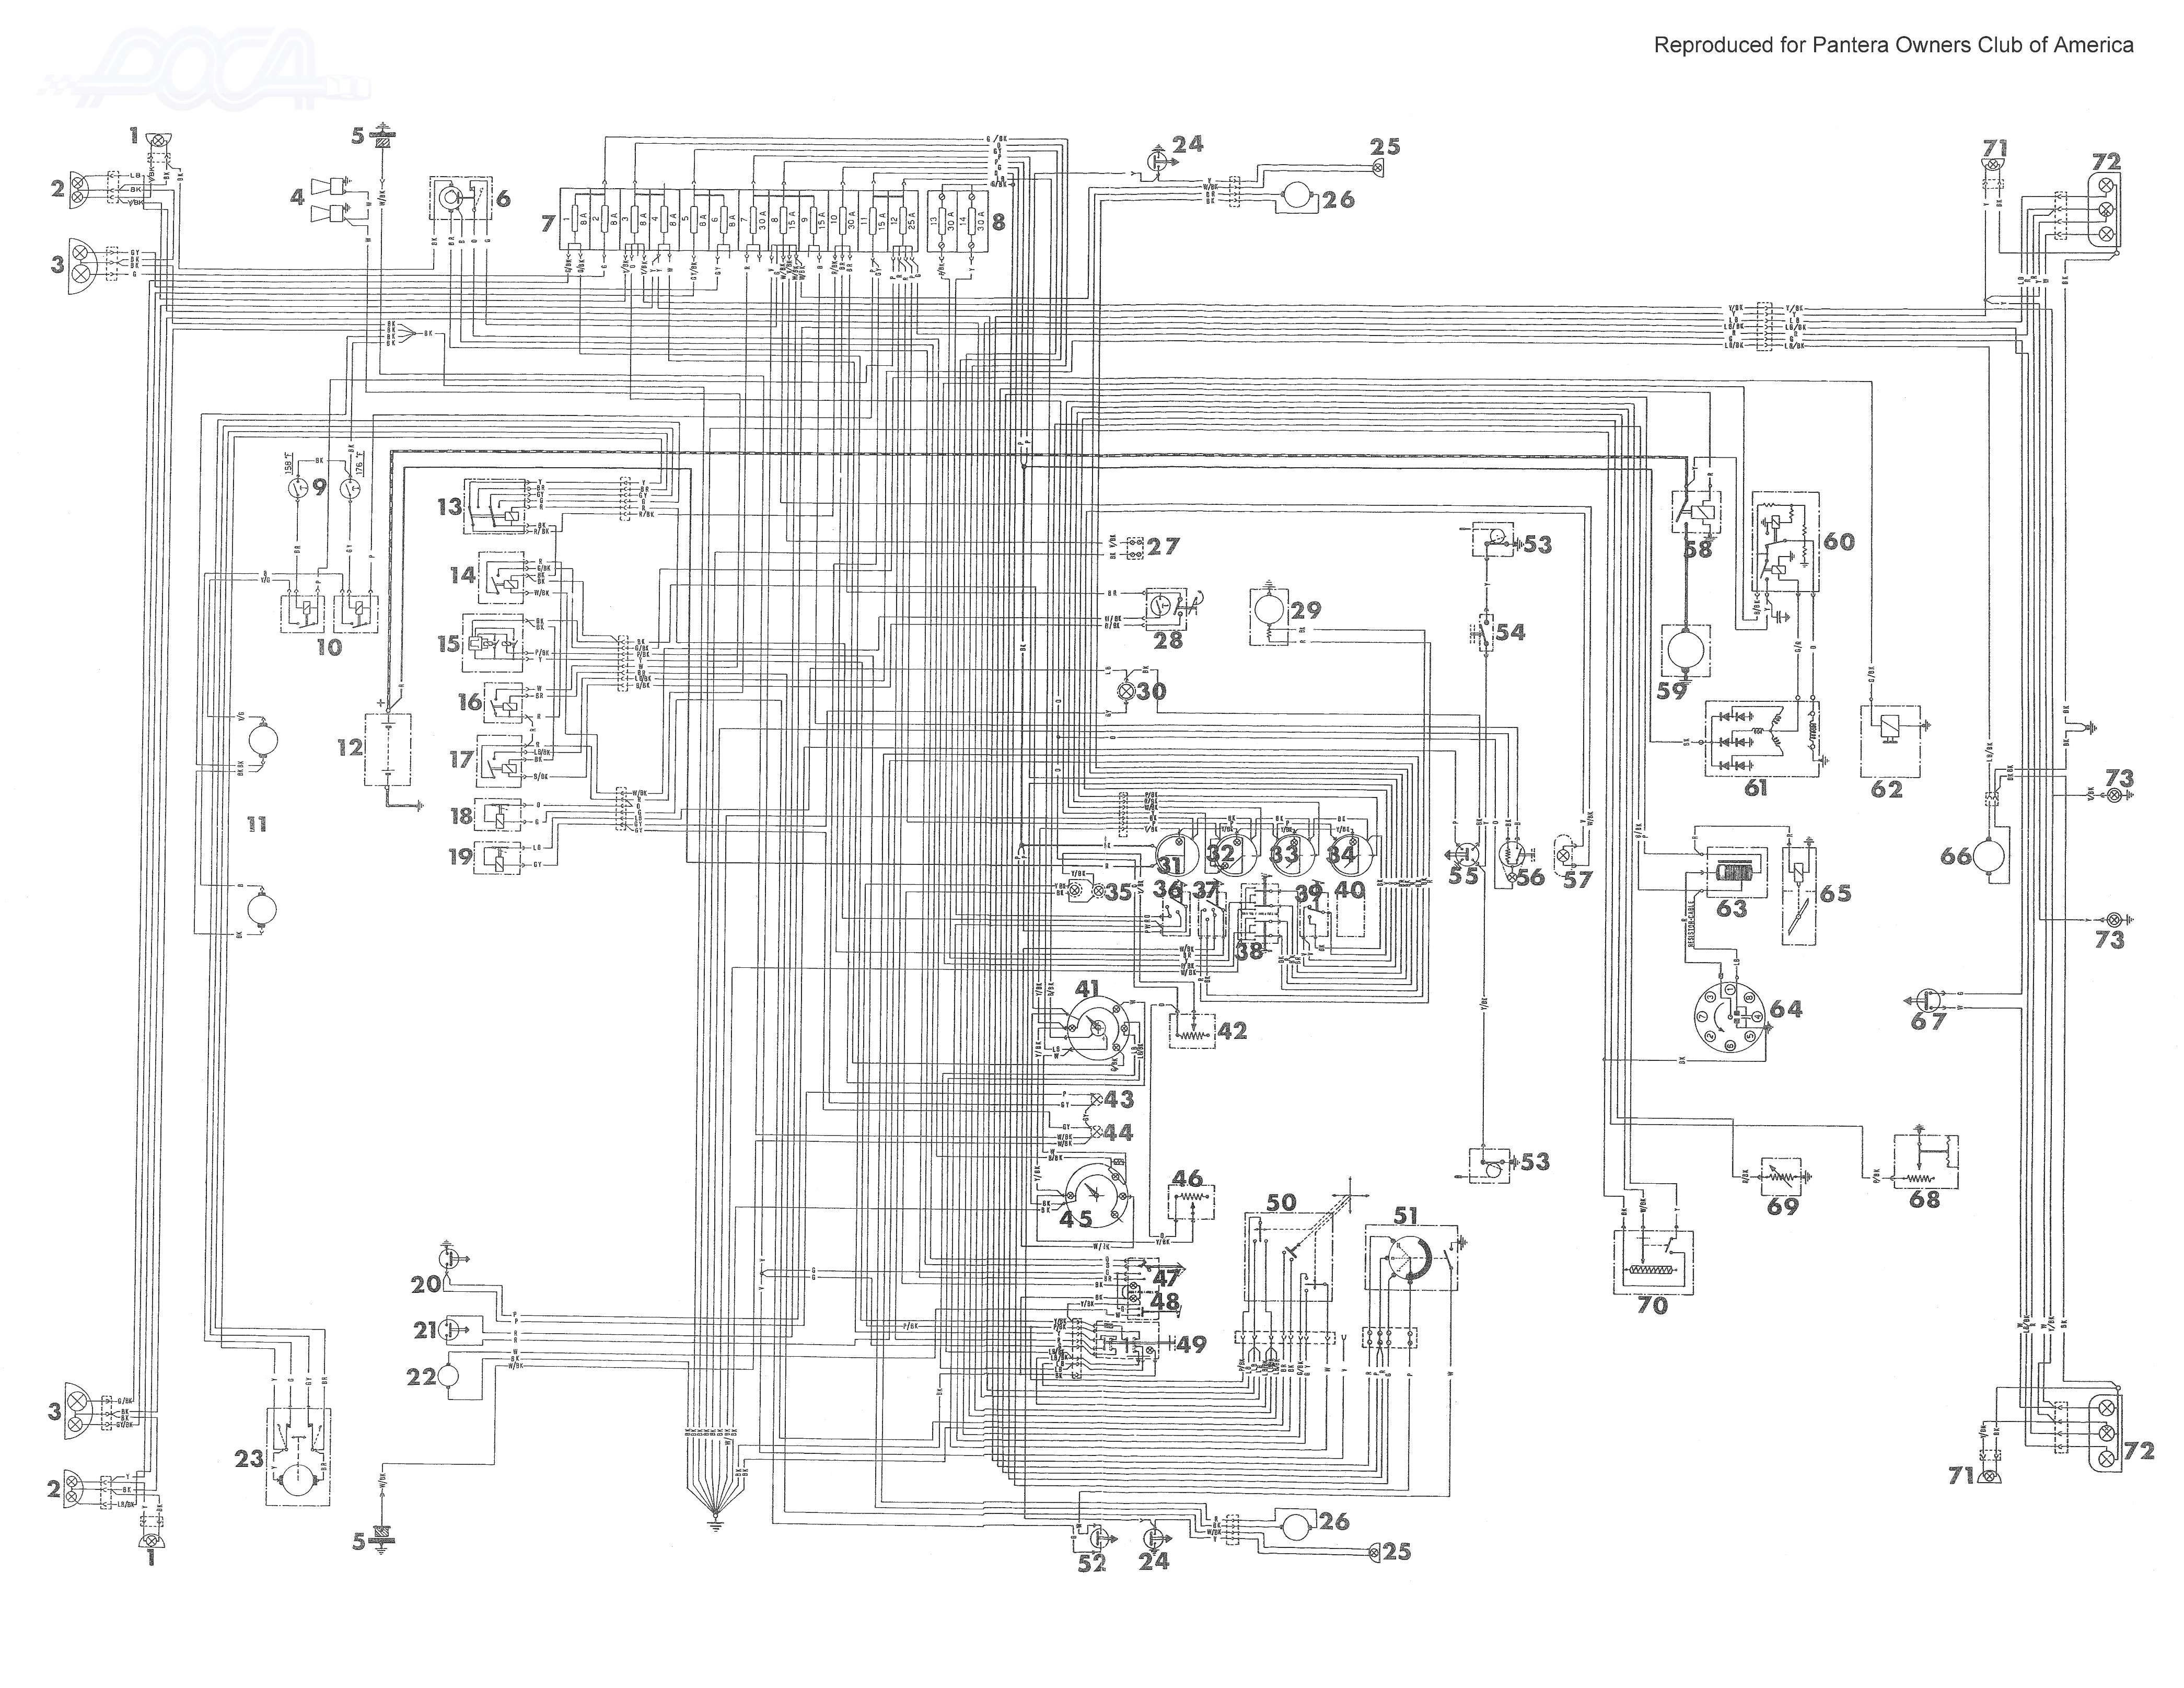 De+Tomaso+L+Schematic+Wiring+Diagram?t=1508404309 de tomaso car manuals, wiring diagrams pdf & fault codes kenworth wiring diagram for pto at virtualis.co